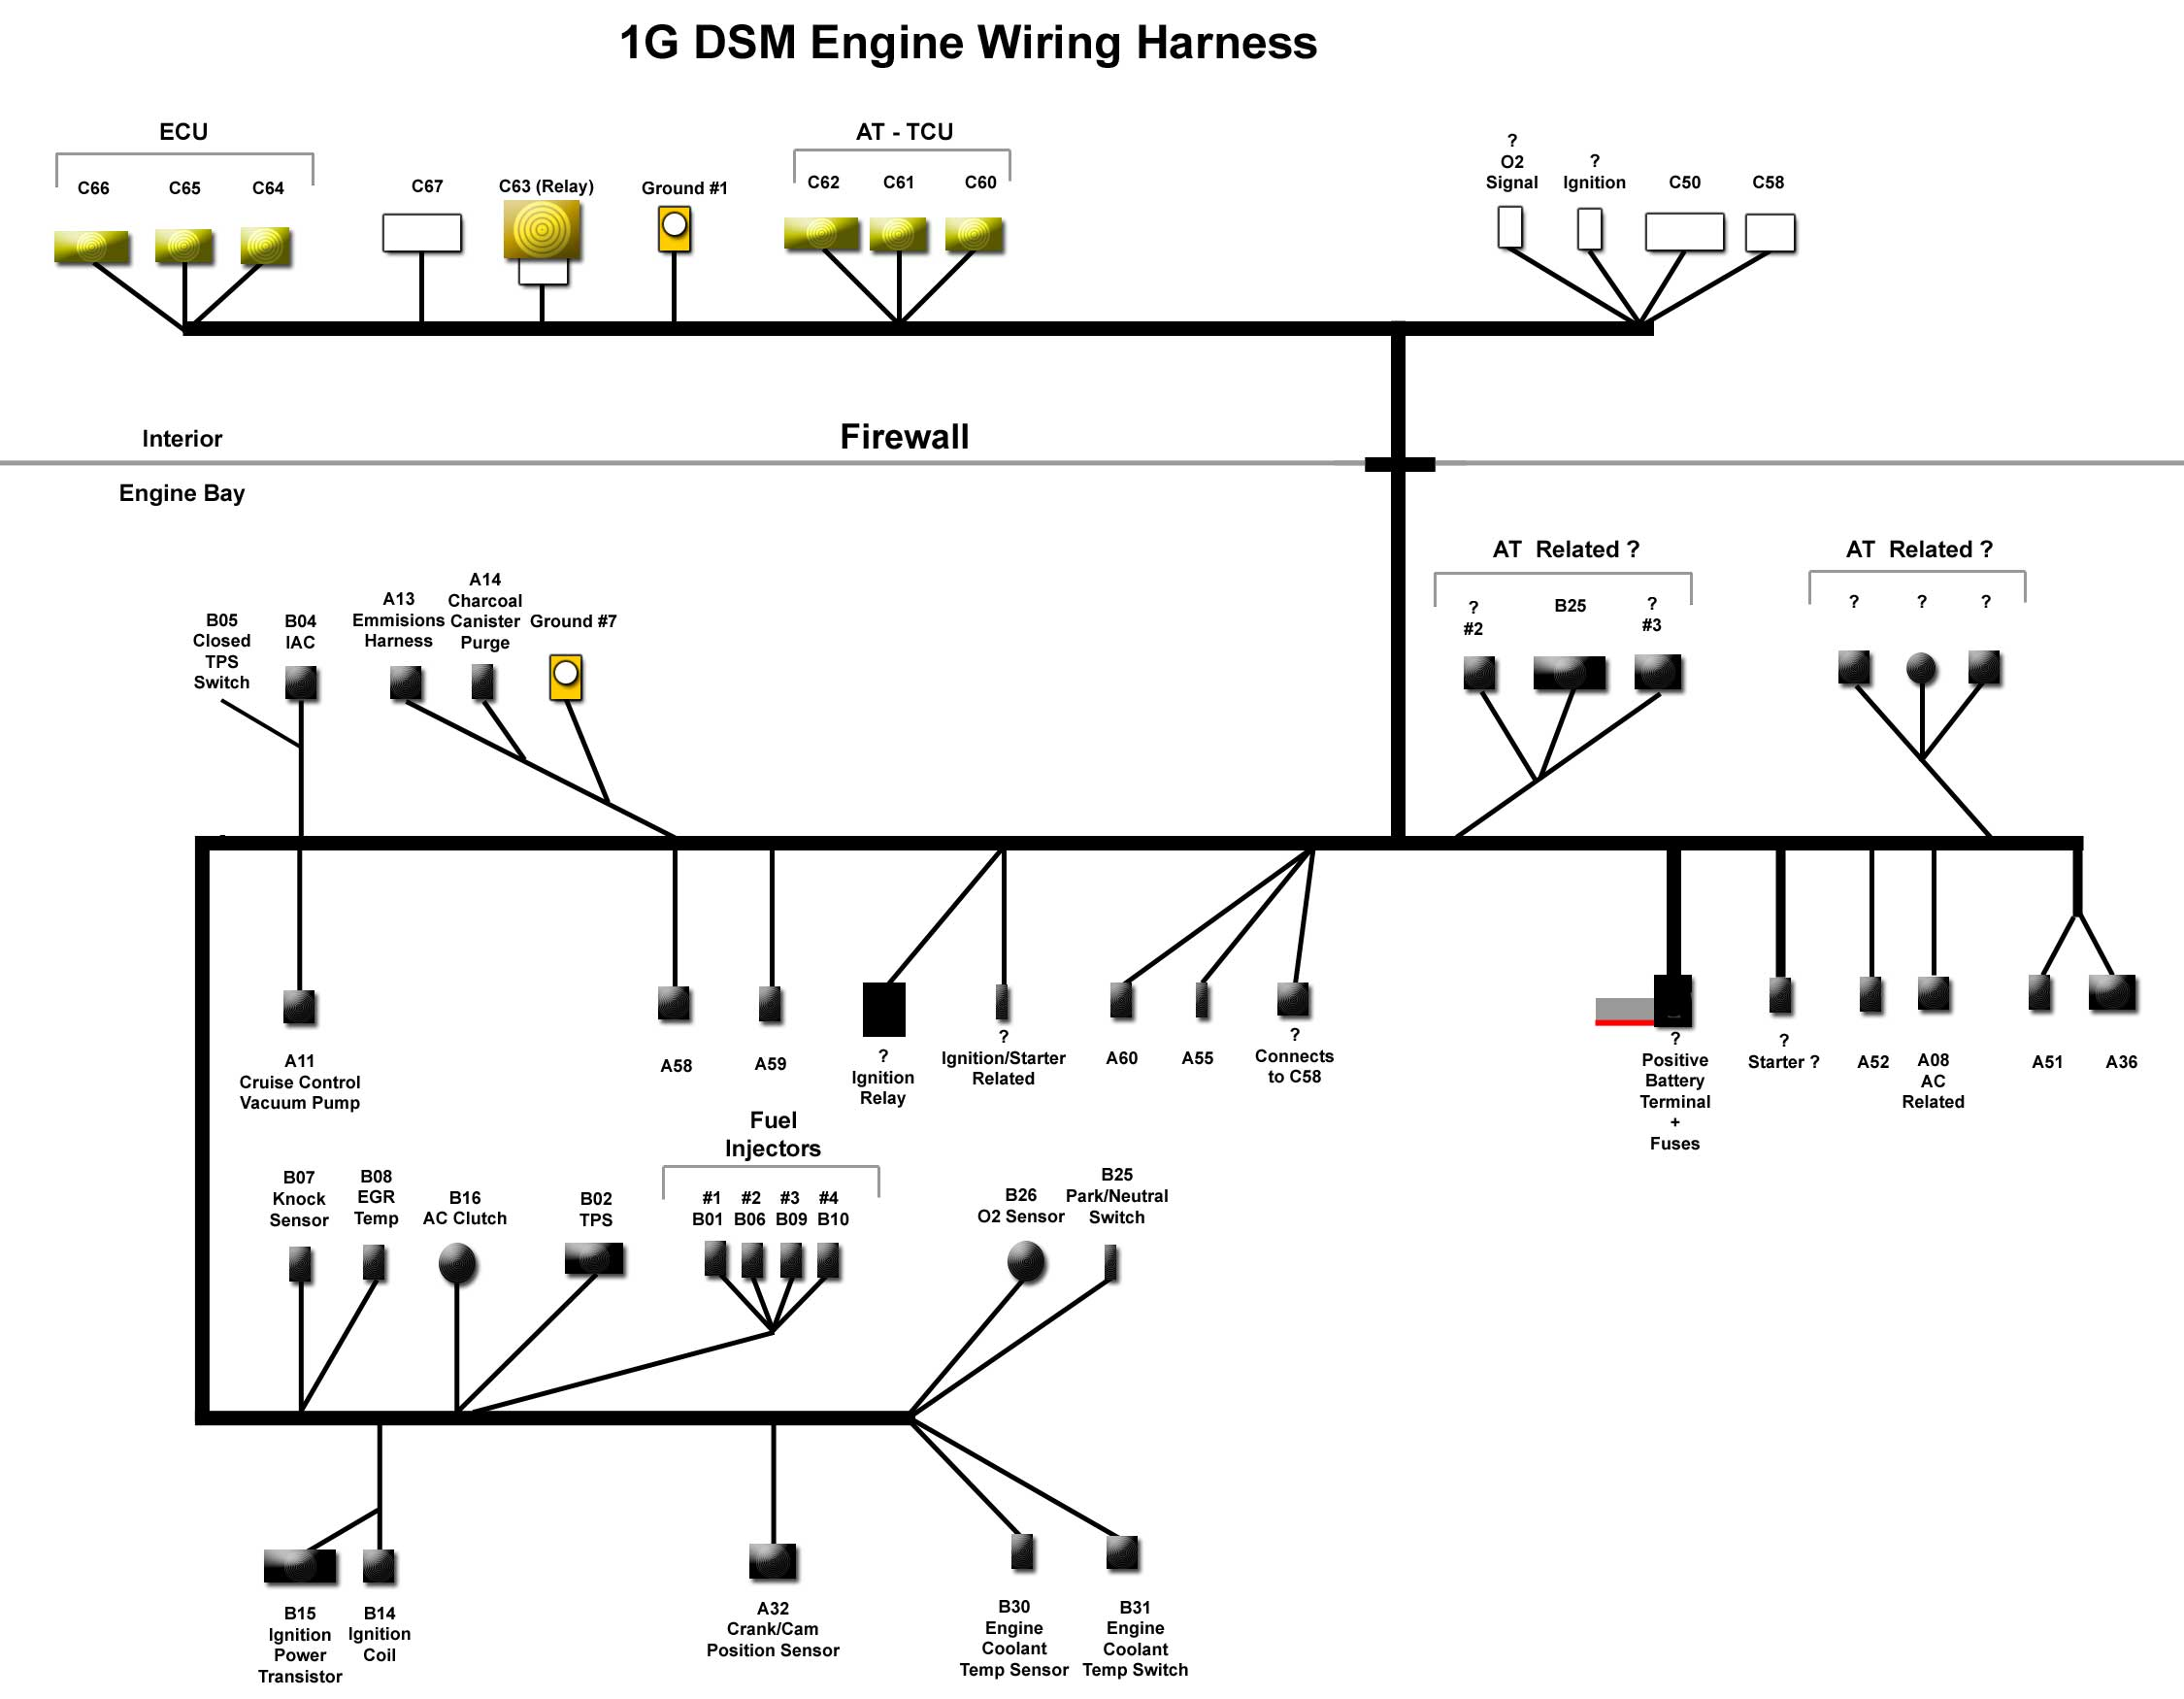 1G DSM EngineHarness 1gb dsm 4g63 turbo wiring harness diagram wiring harness diagram at virtualis.co